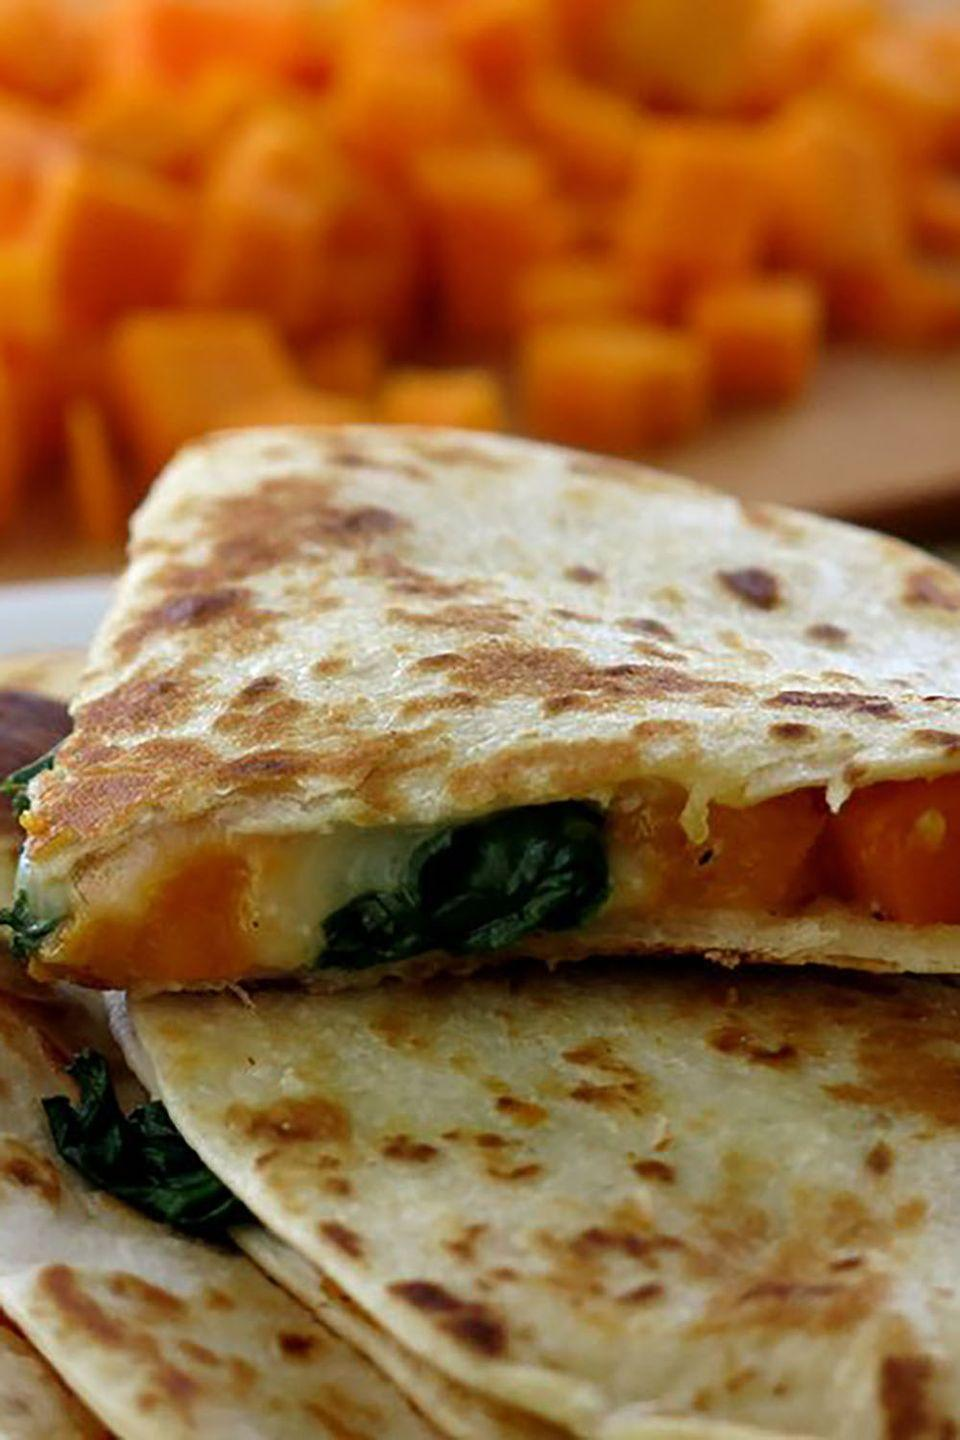 """<p>Sneak some extra veggies into quesadillas that offer a fall twist on a Mexican classic.</p><p><strong>Get the recipe at <a href=""""http://www.dinner-mom.com/butternut-squash-and-spinach-quesadillas/"""" rel=""""nofollow noopener"""" target=""""_blank"""" data-ylk=""""slk:The Dinner Mom"""" class=""""link rapid-noclick-resp"""">The Dinner Mom</a>.</strong><br></p>"""